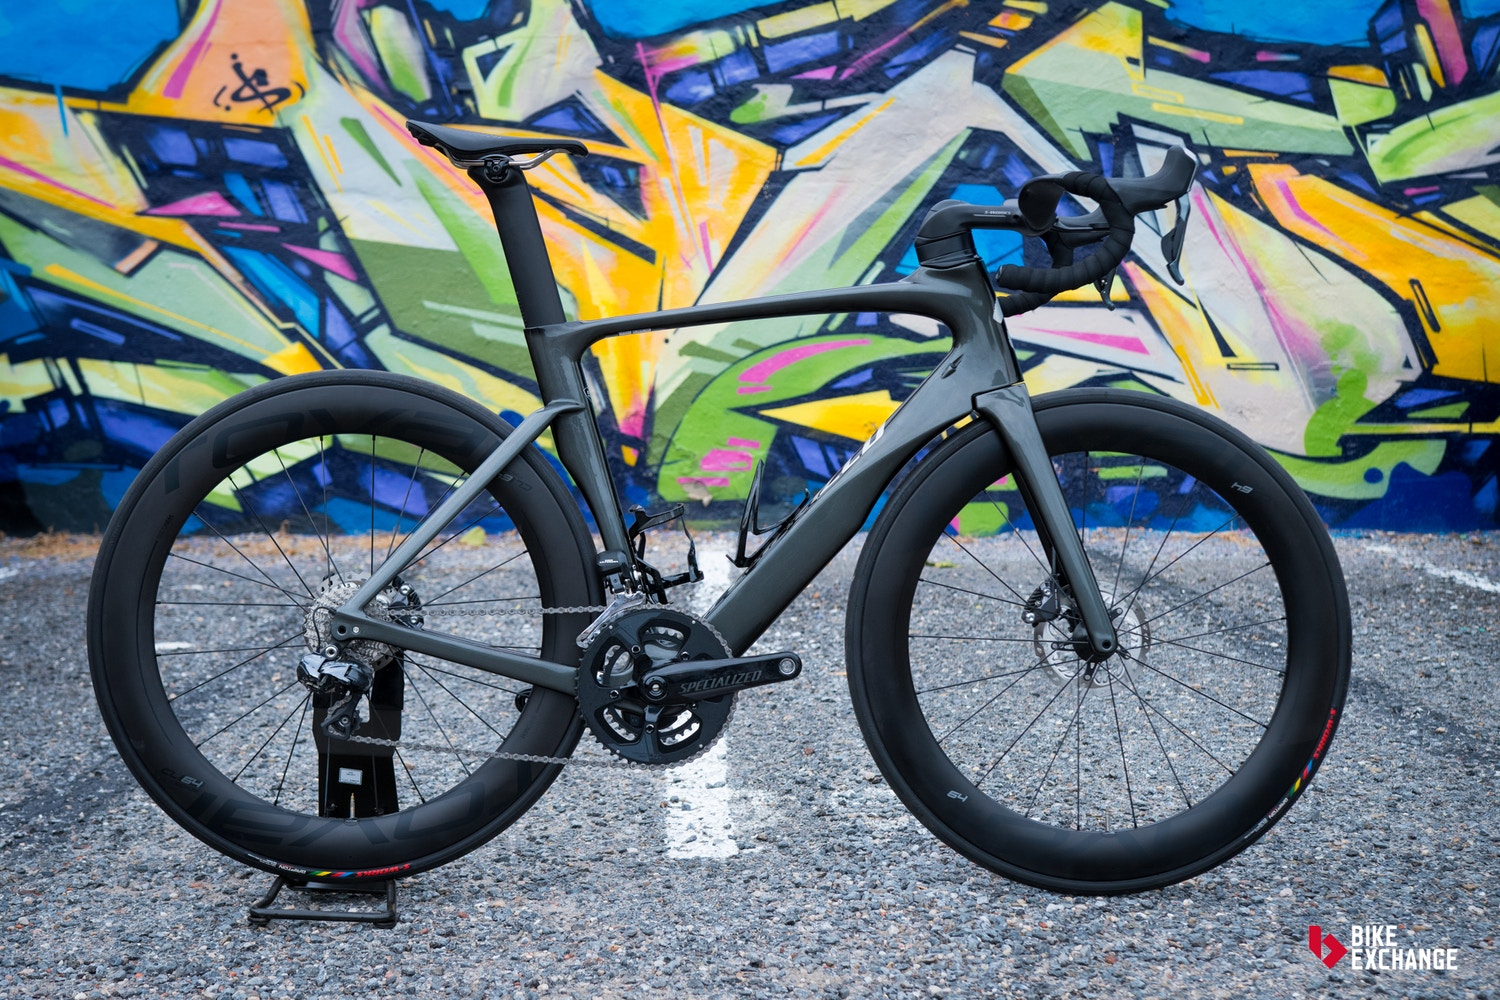 Specialized Venge ViAS Disc - Ten Things to Know